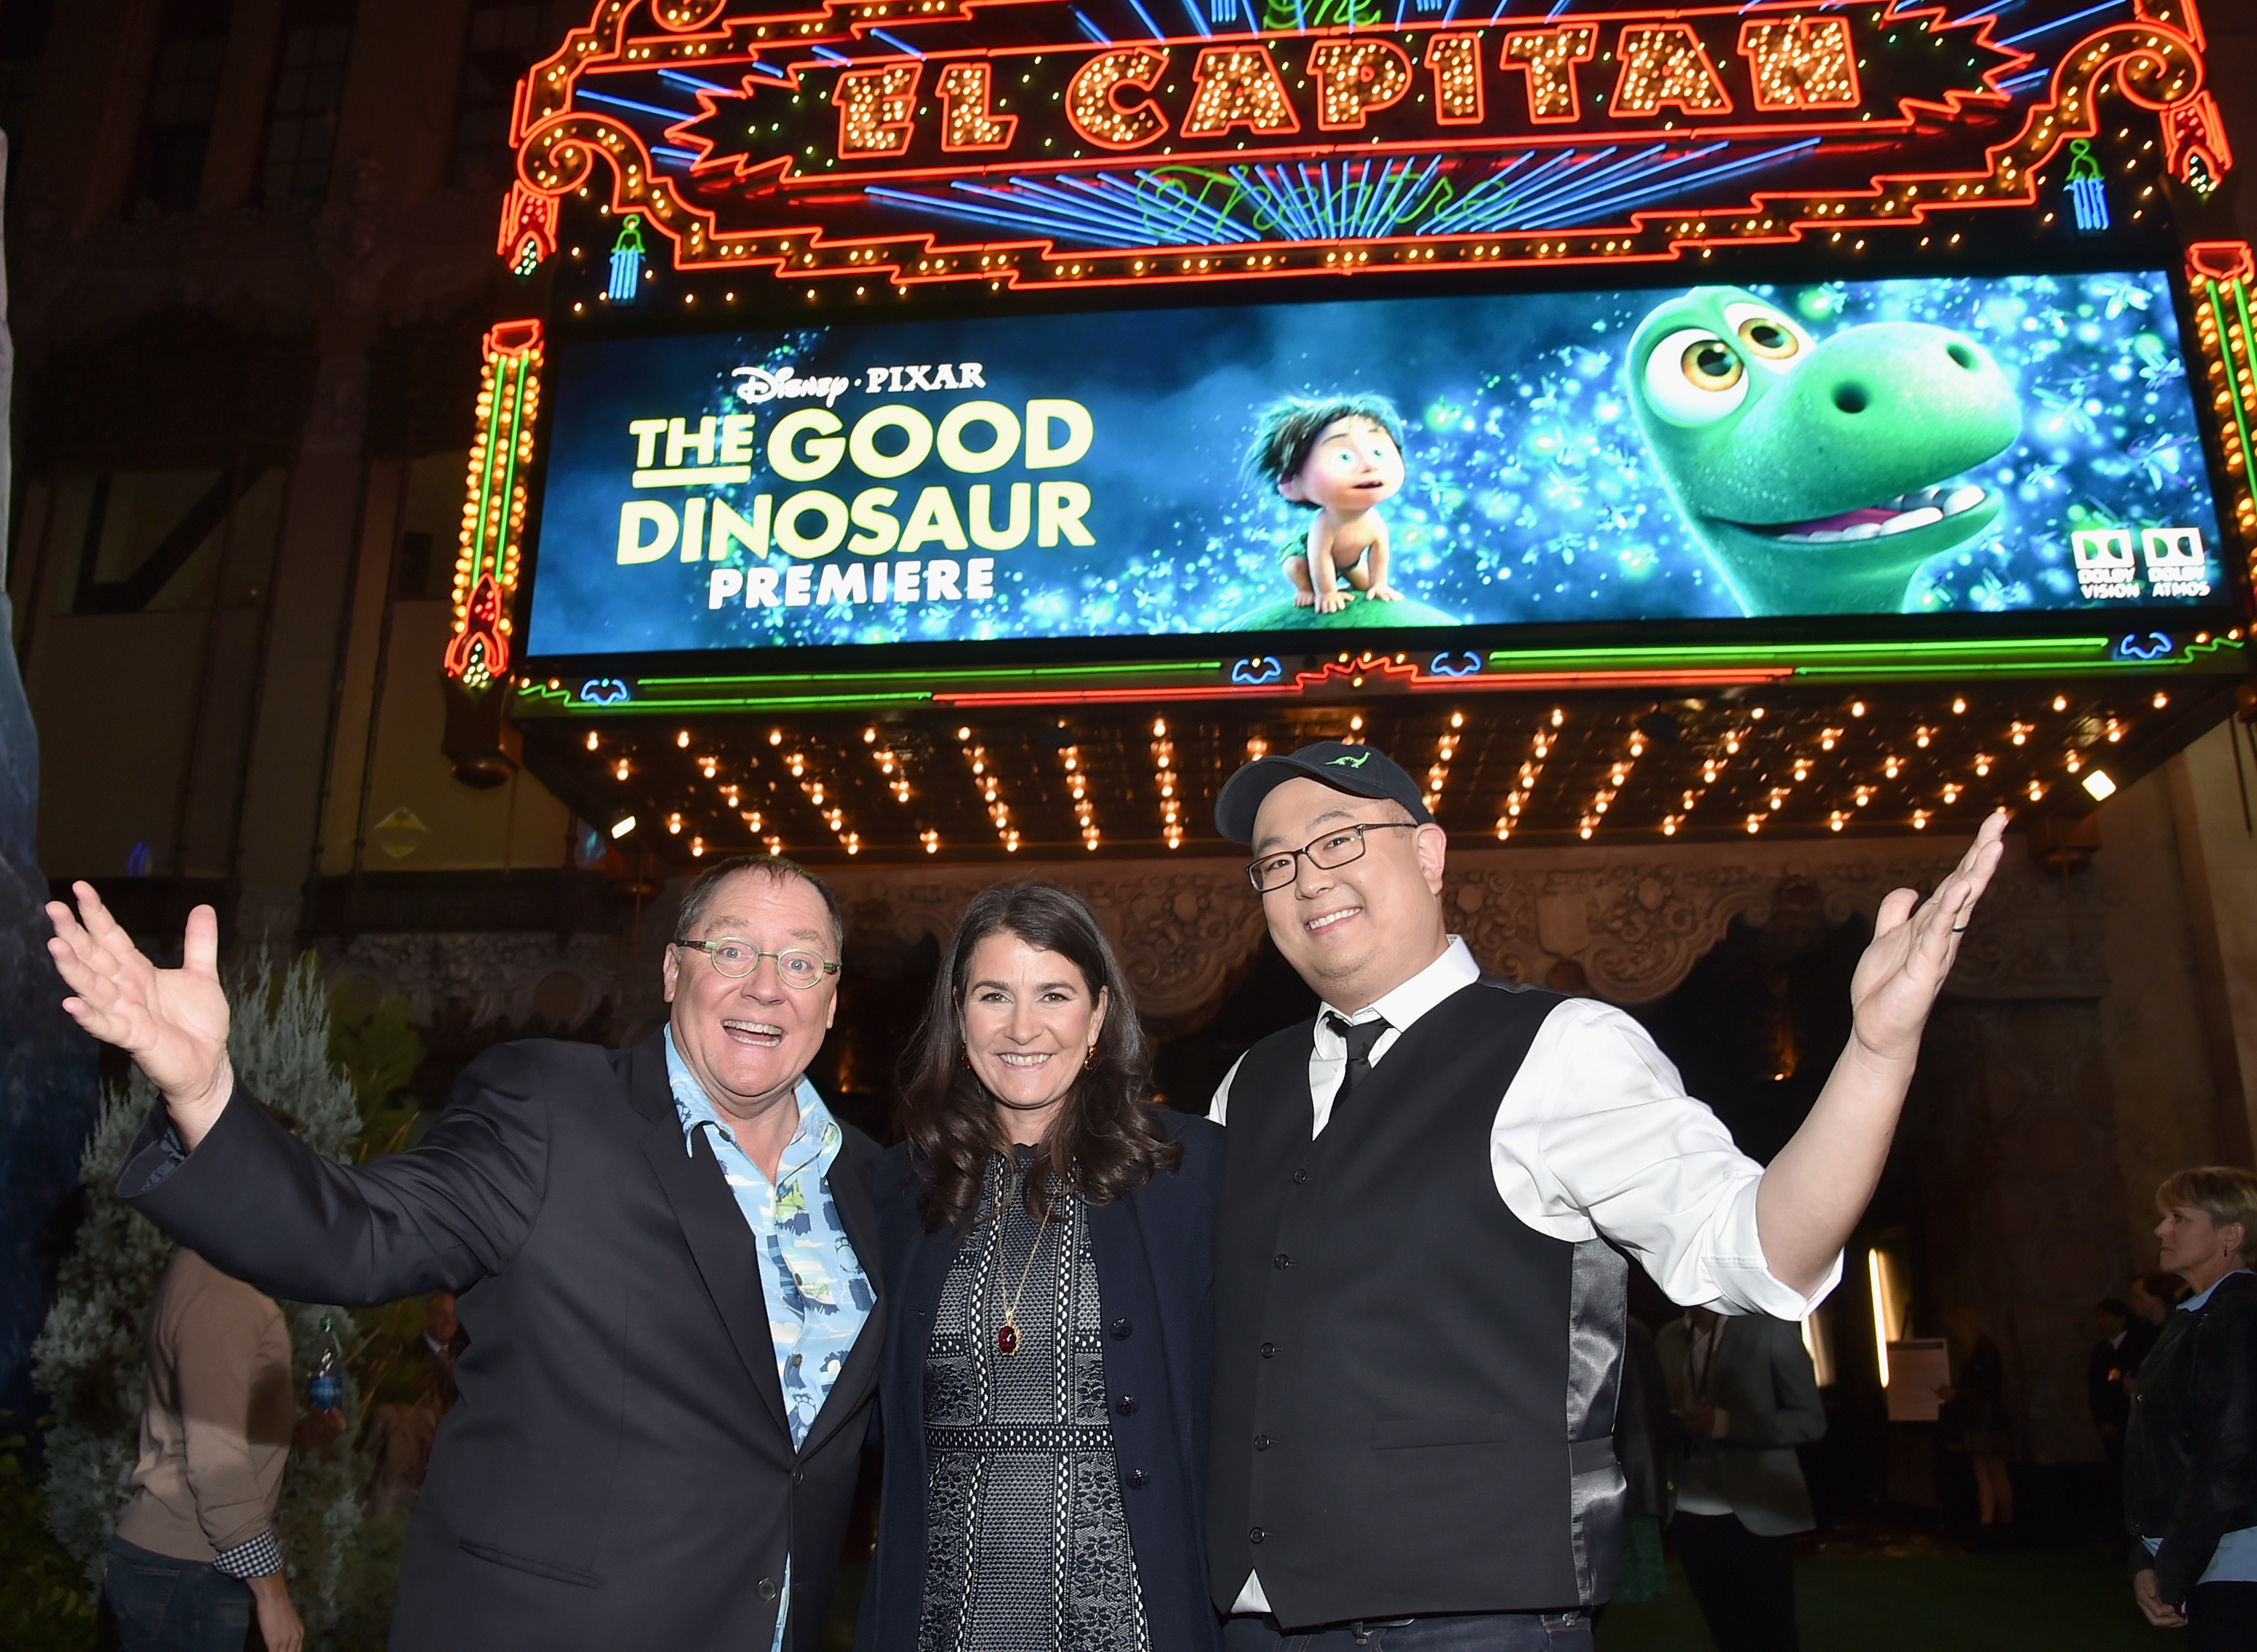 HOLLYWOOD, CA - NOVEMBER 17: (L-R) Executive producer John Lasseter, producer Denise Ream and director Peter Sohn attend the World Premiere Of Disney-Pixar's THE GOOD DINOSAUR at the El Capitan Theatre on November 17, 2015 in Hollywood, California. (Photo by Alberto E. Rodriguez/Getty Images for Disney) *** Local Caption *** John Lasseter; Peter Sohn; Denise Ream